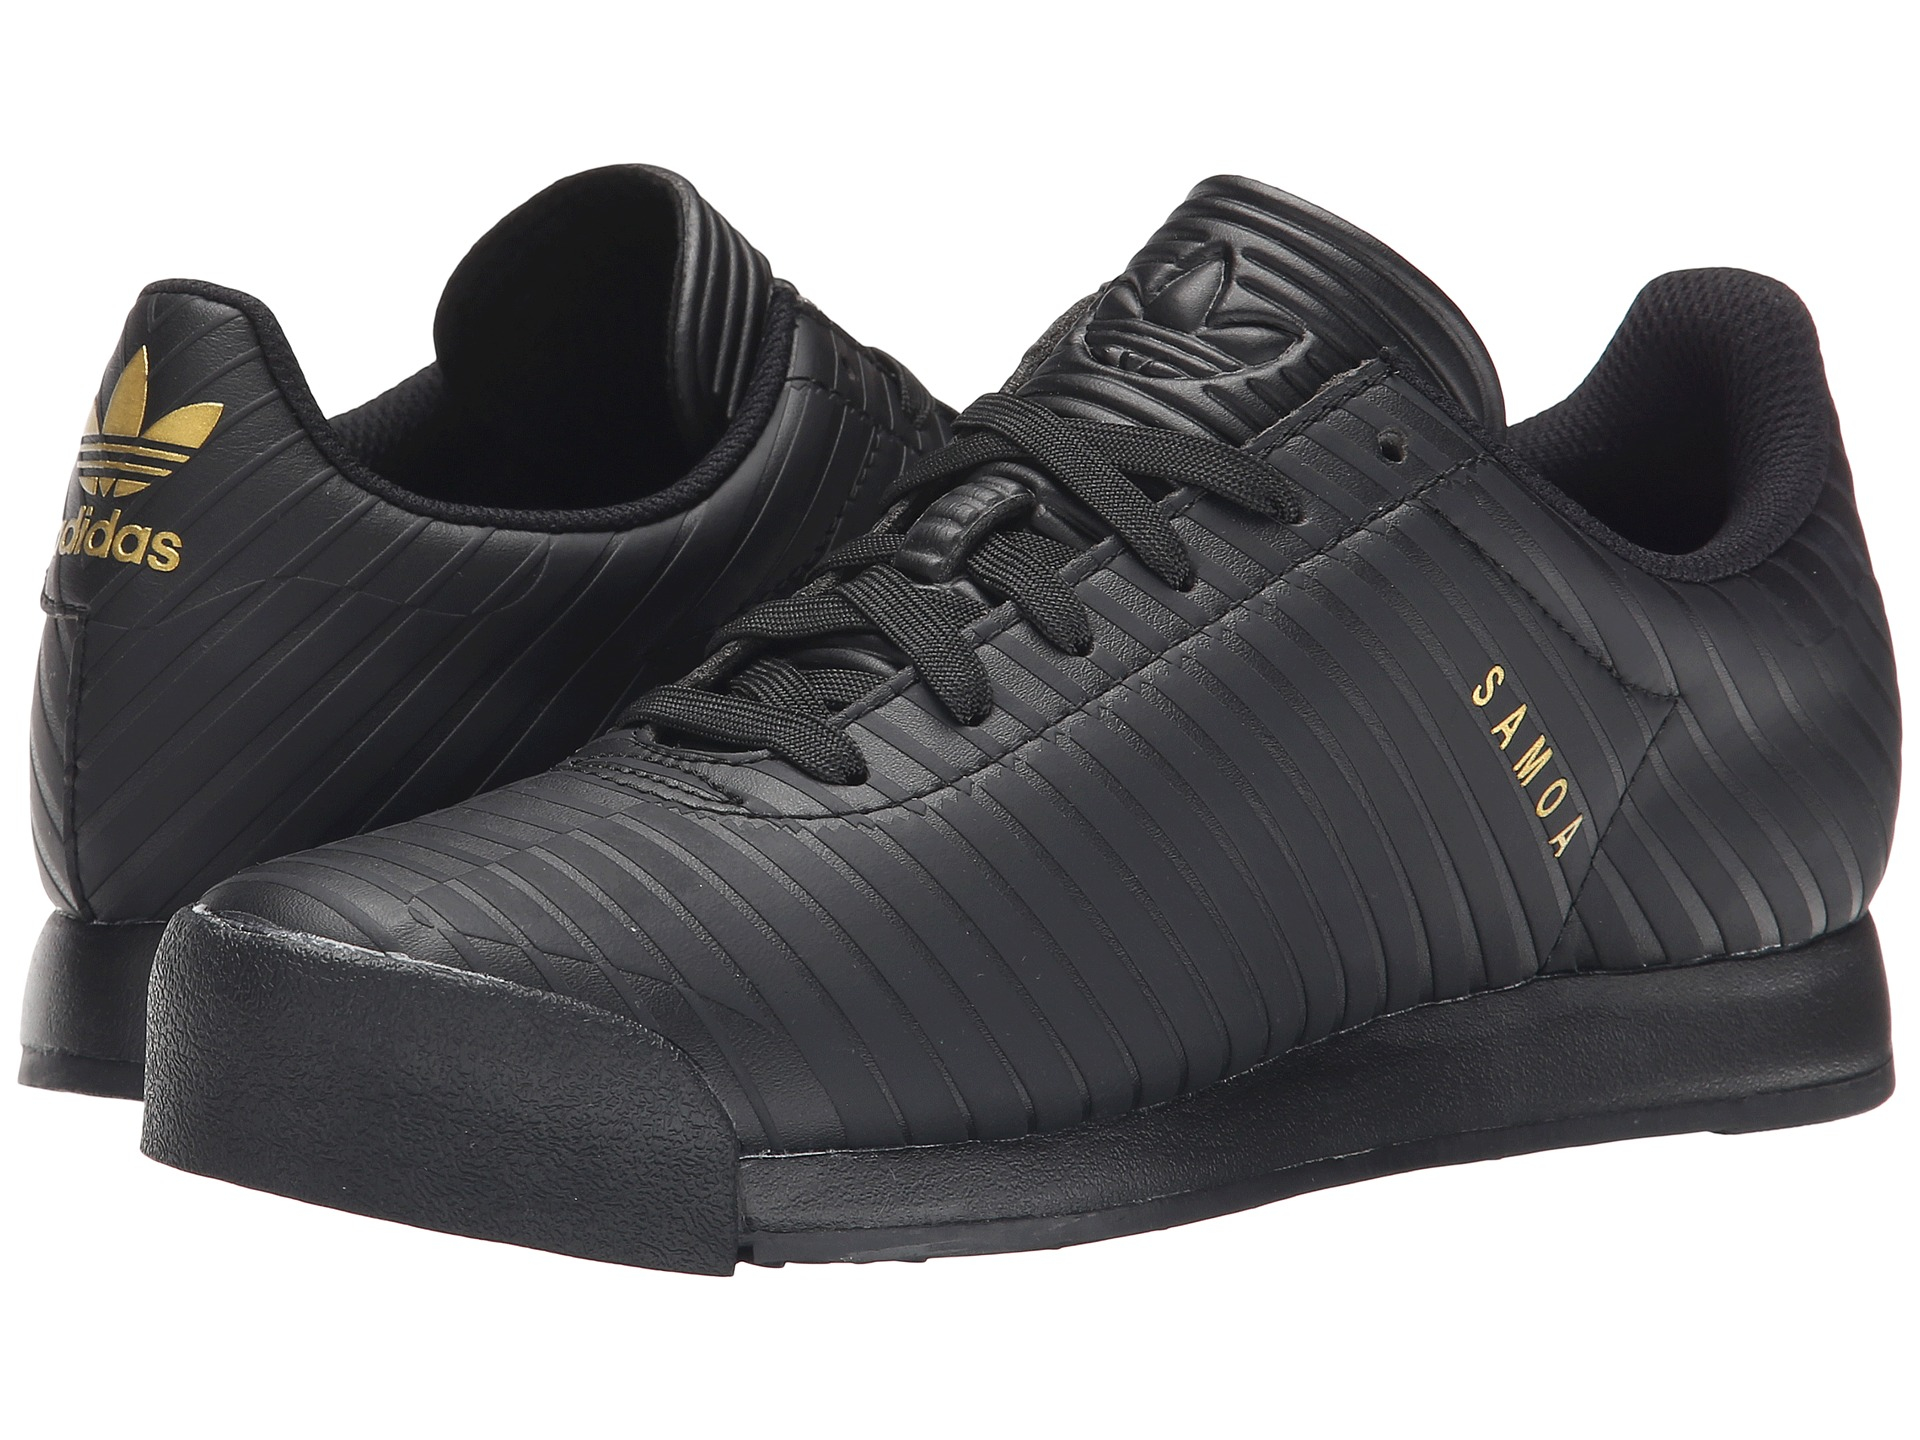 Lyst - adidas Originals Samoa in Black 33d4a8f98